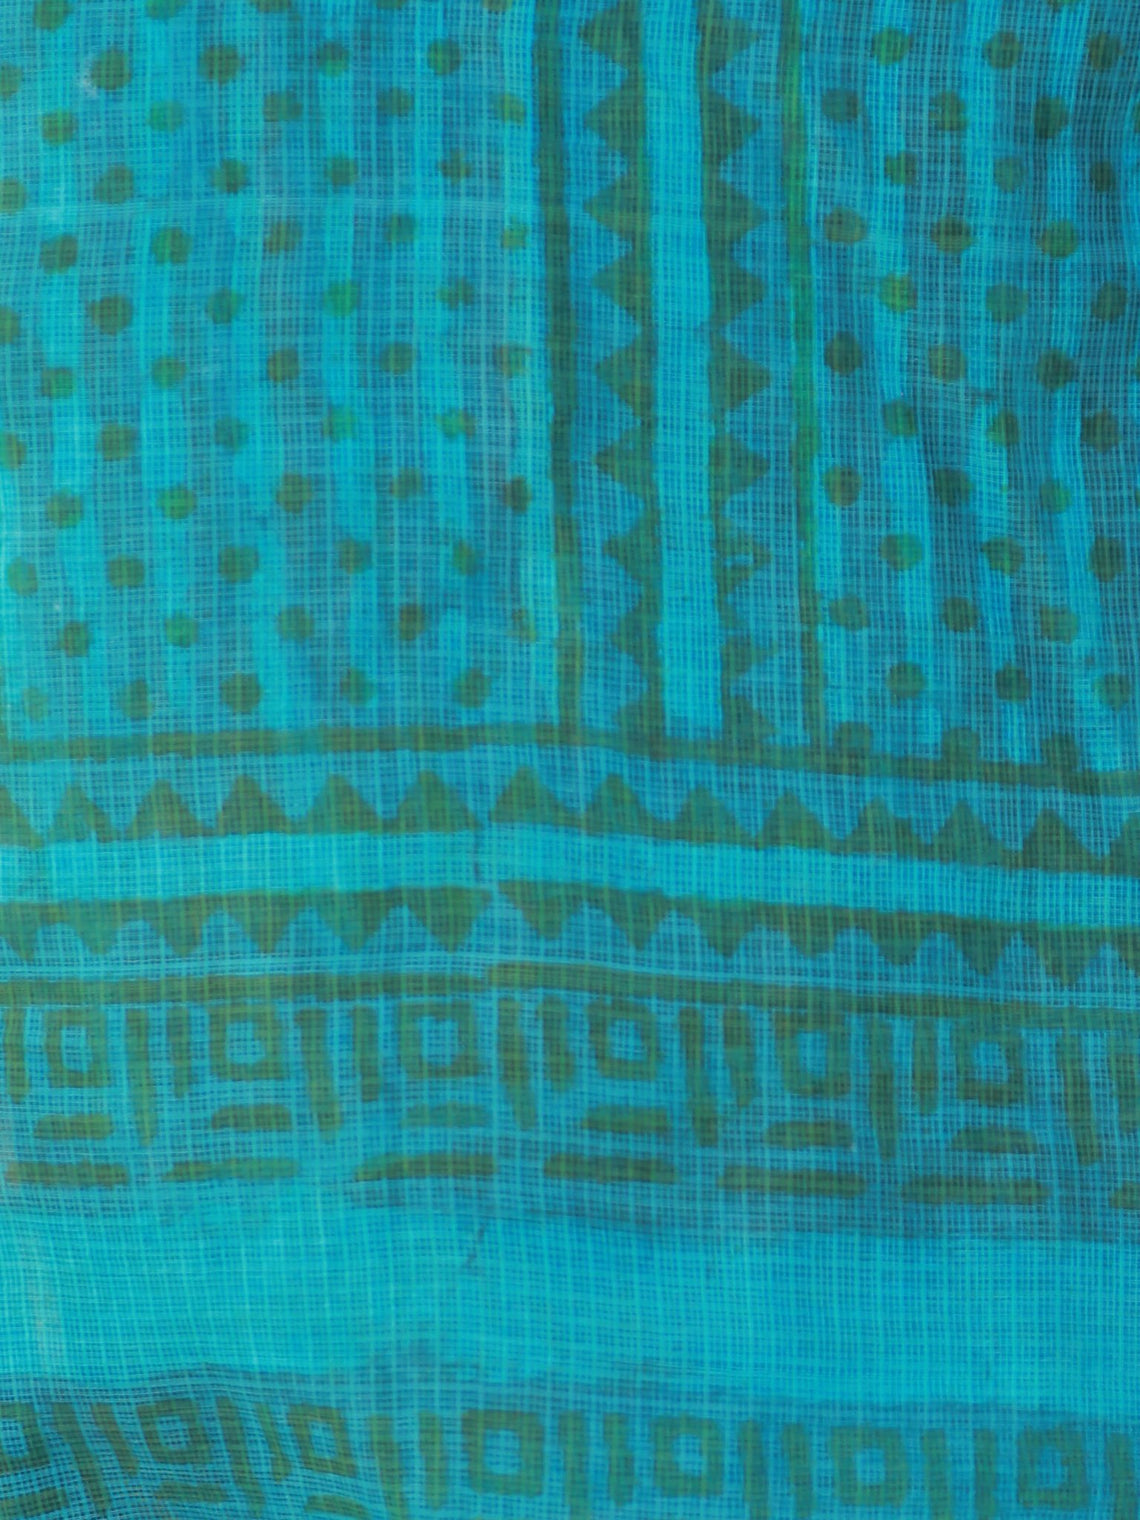 Teal Green Blue Kota Silk Hand Block Printed Dupatta - D04170463